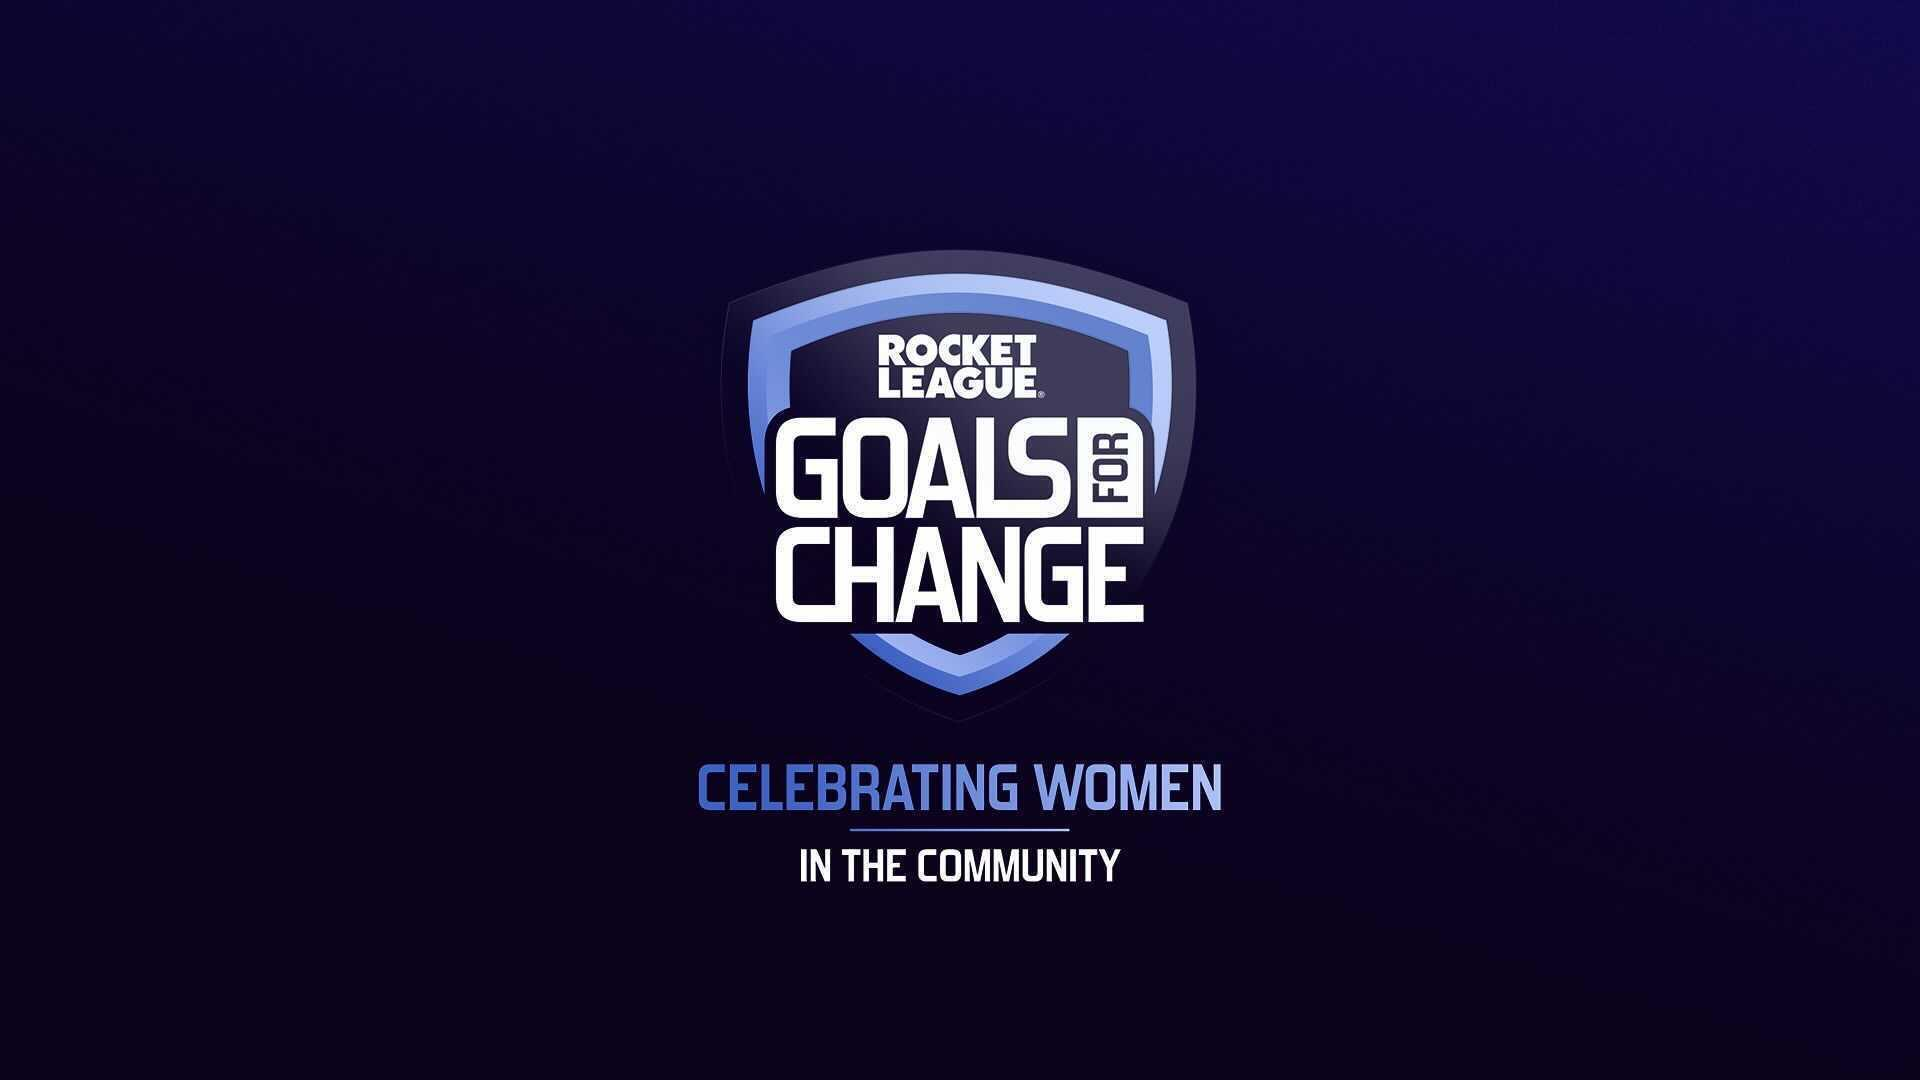 Presentación de Rocket League: Goals For Change Image